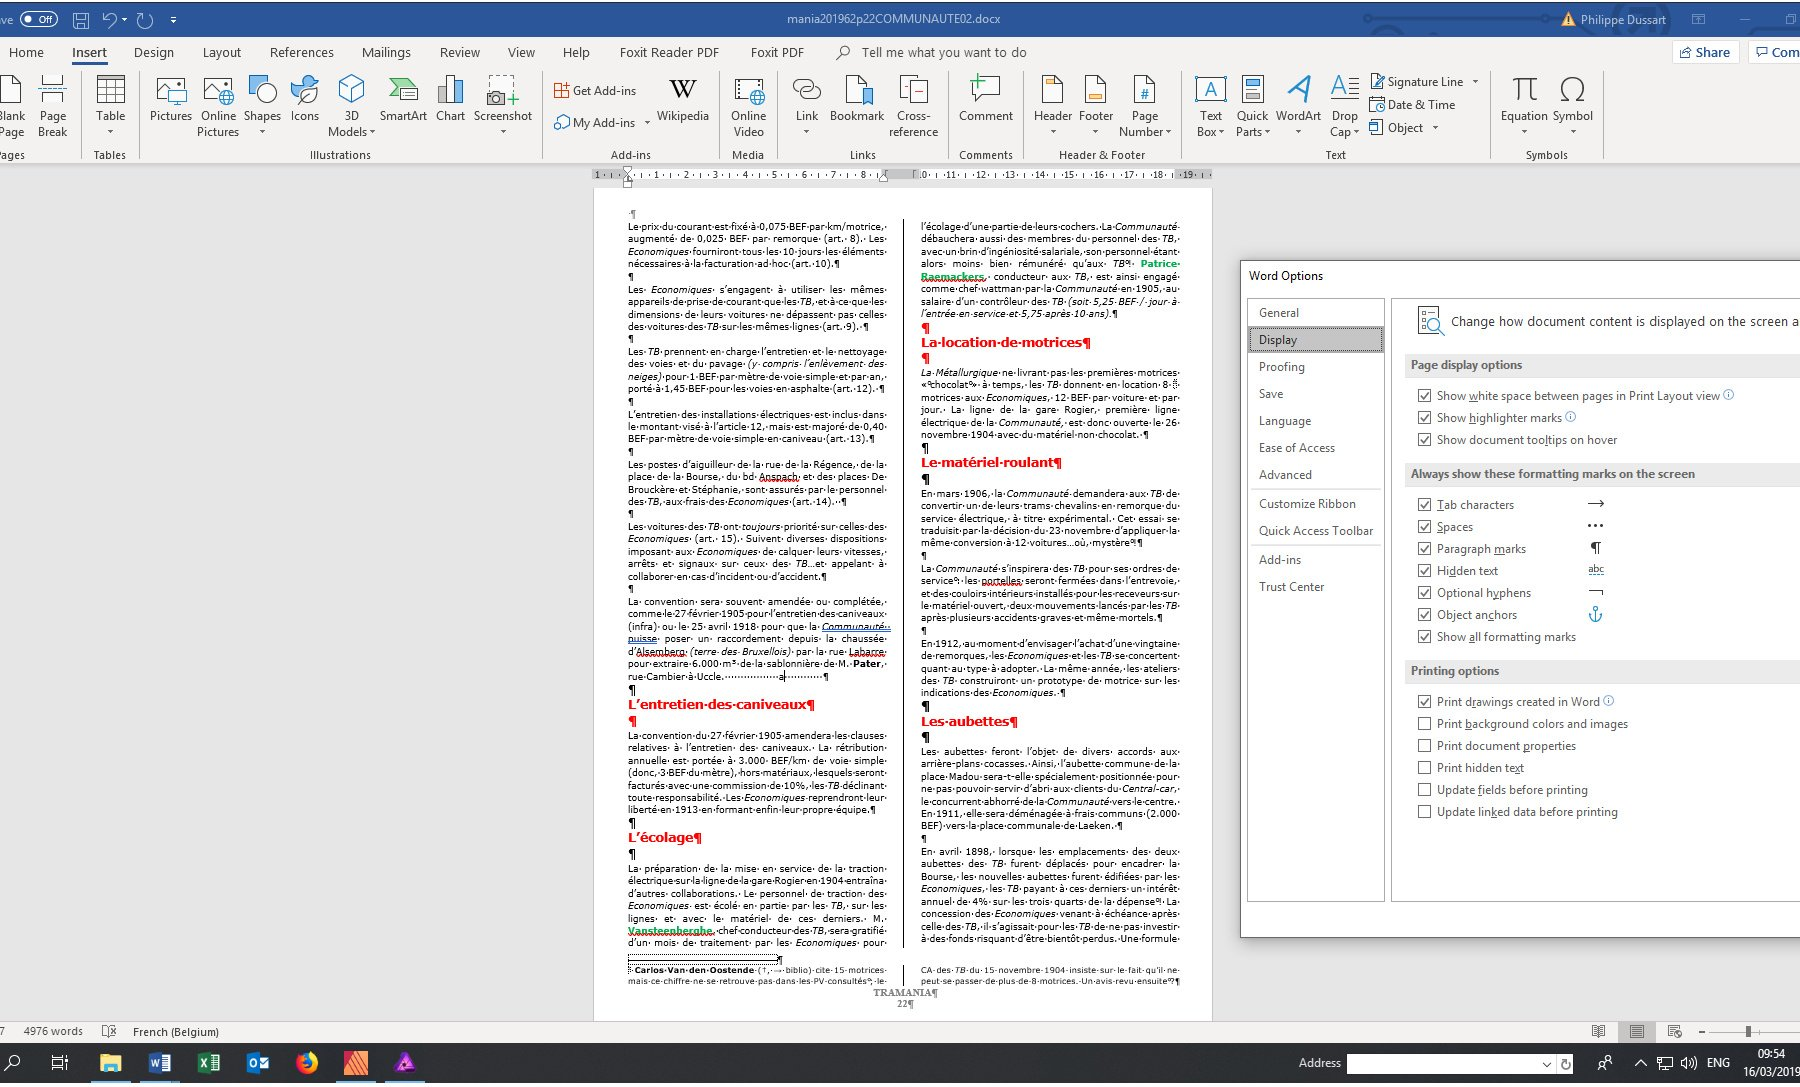 Character issue with File/Open PDF - Publisher beta on Windows